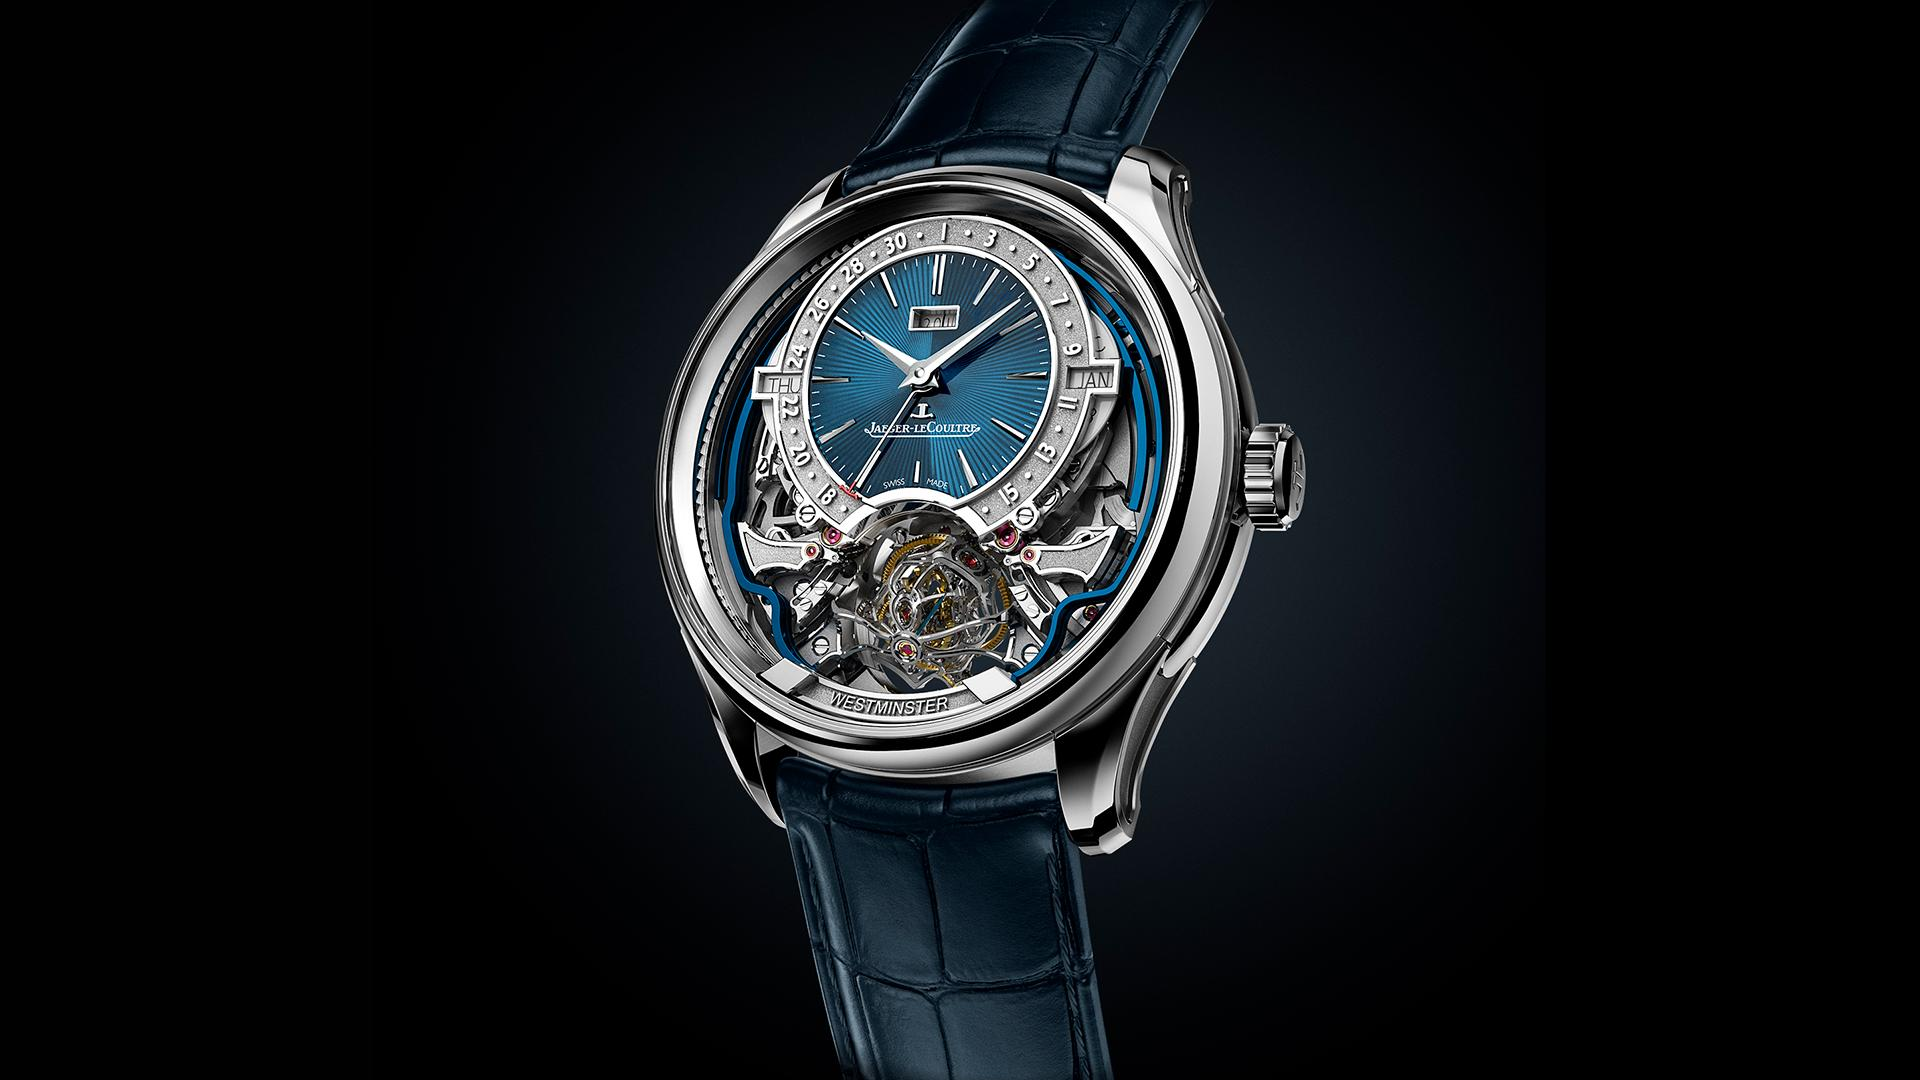 Jaeger-LeCoultre Master Grande Tradition Gyrotourbillon Westminster Perpétuel watch